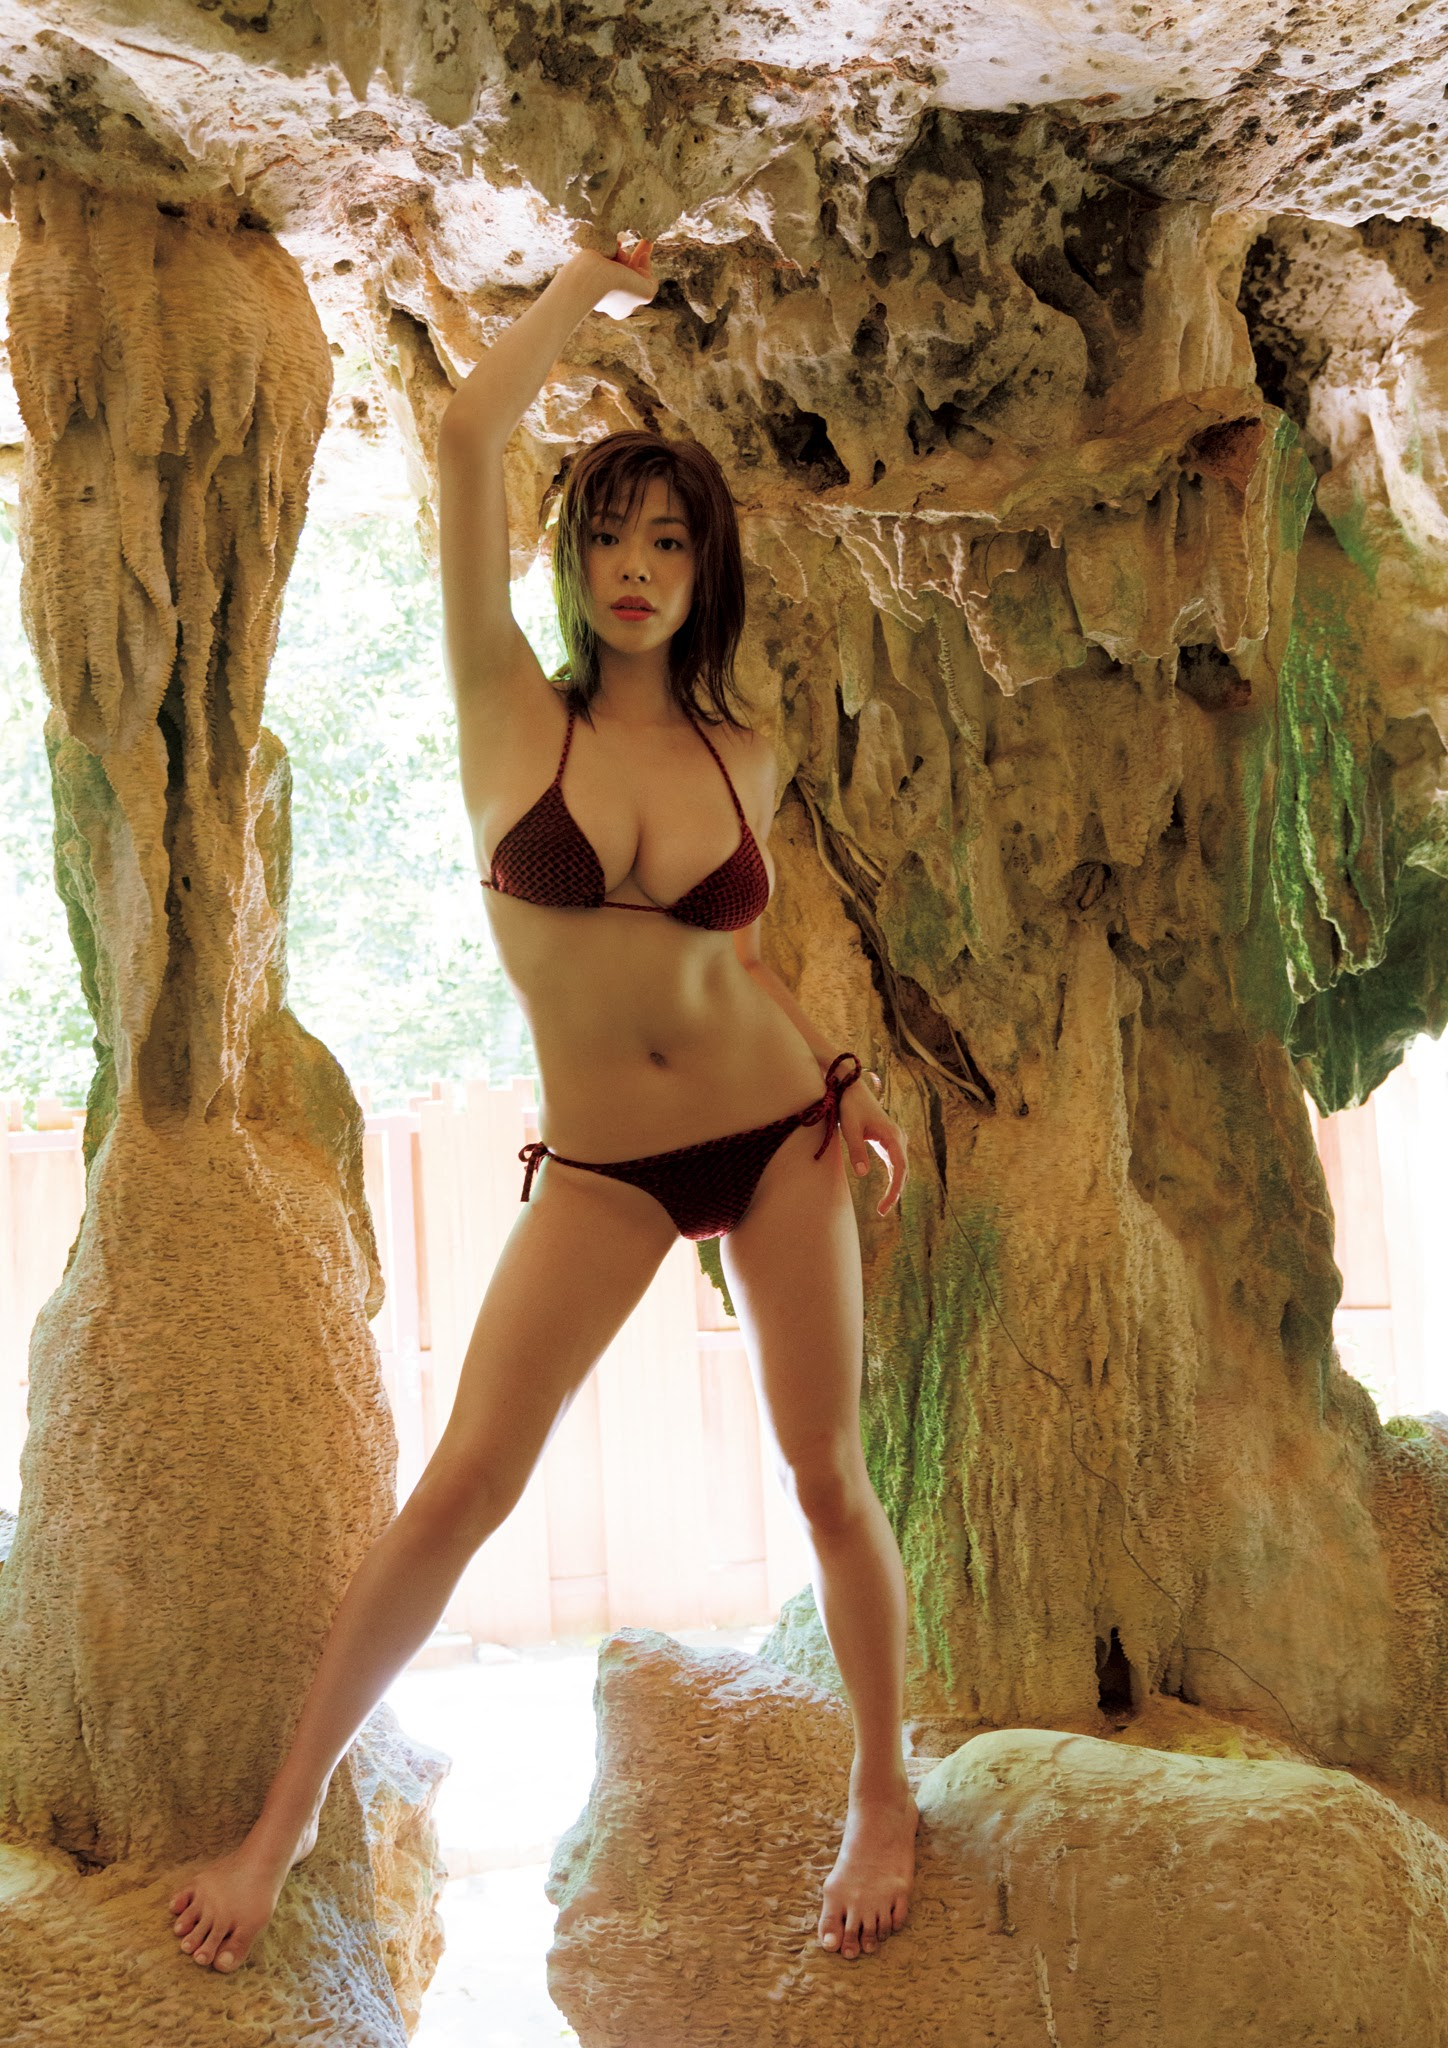 Super body of H cup Minami Wachi 2020 that exposes body and mind in tropical Thailand029